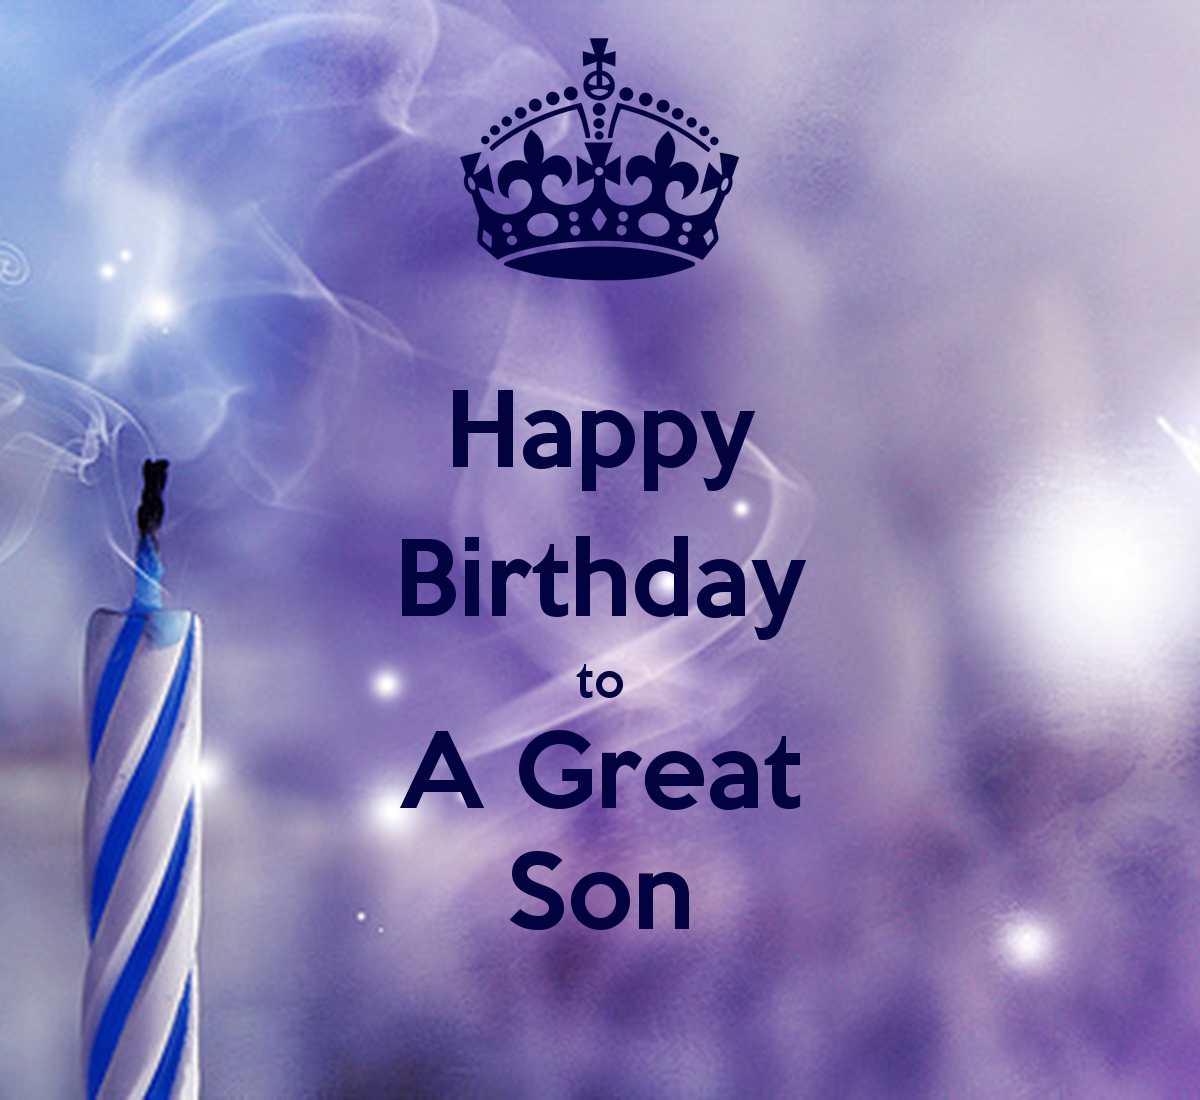 Happy Birthday To My Son Images And Quotes: Happy 15th Birthday Son Quotes. QuotesGram